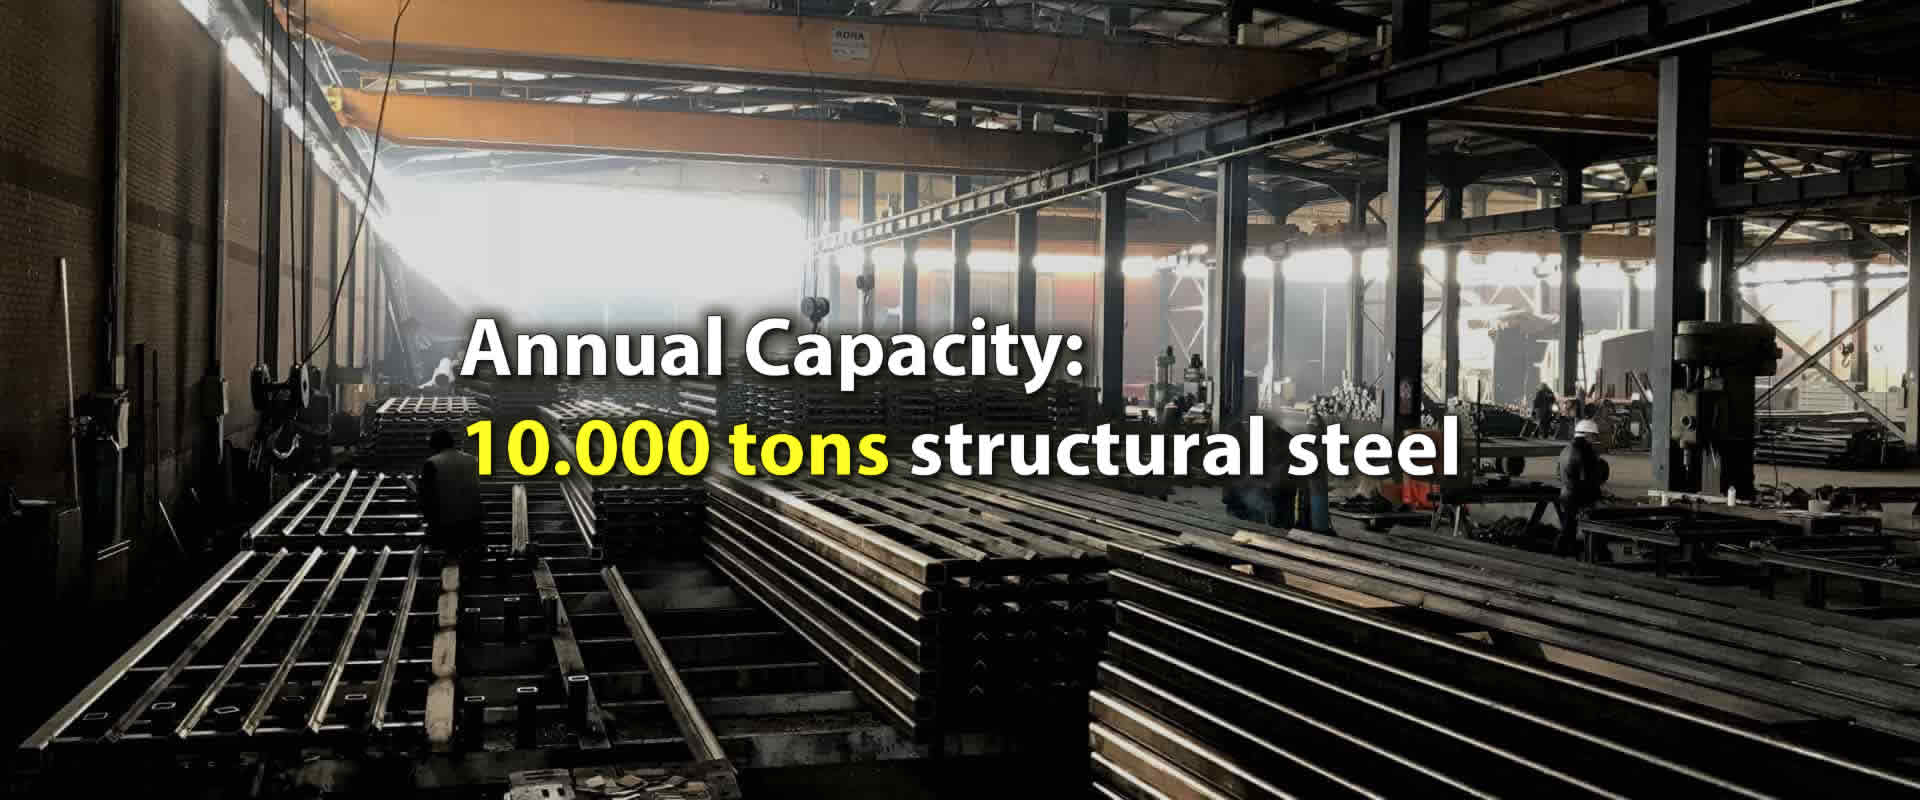 Annual Capacity 10.000 tons structural steel